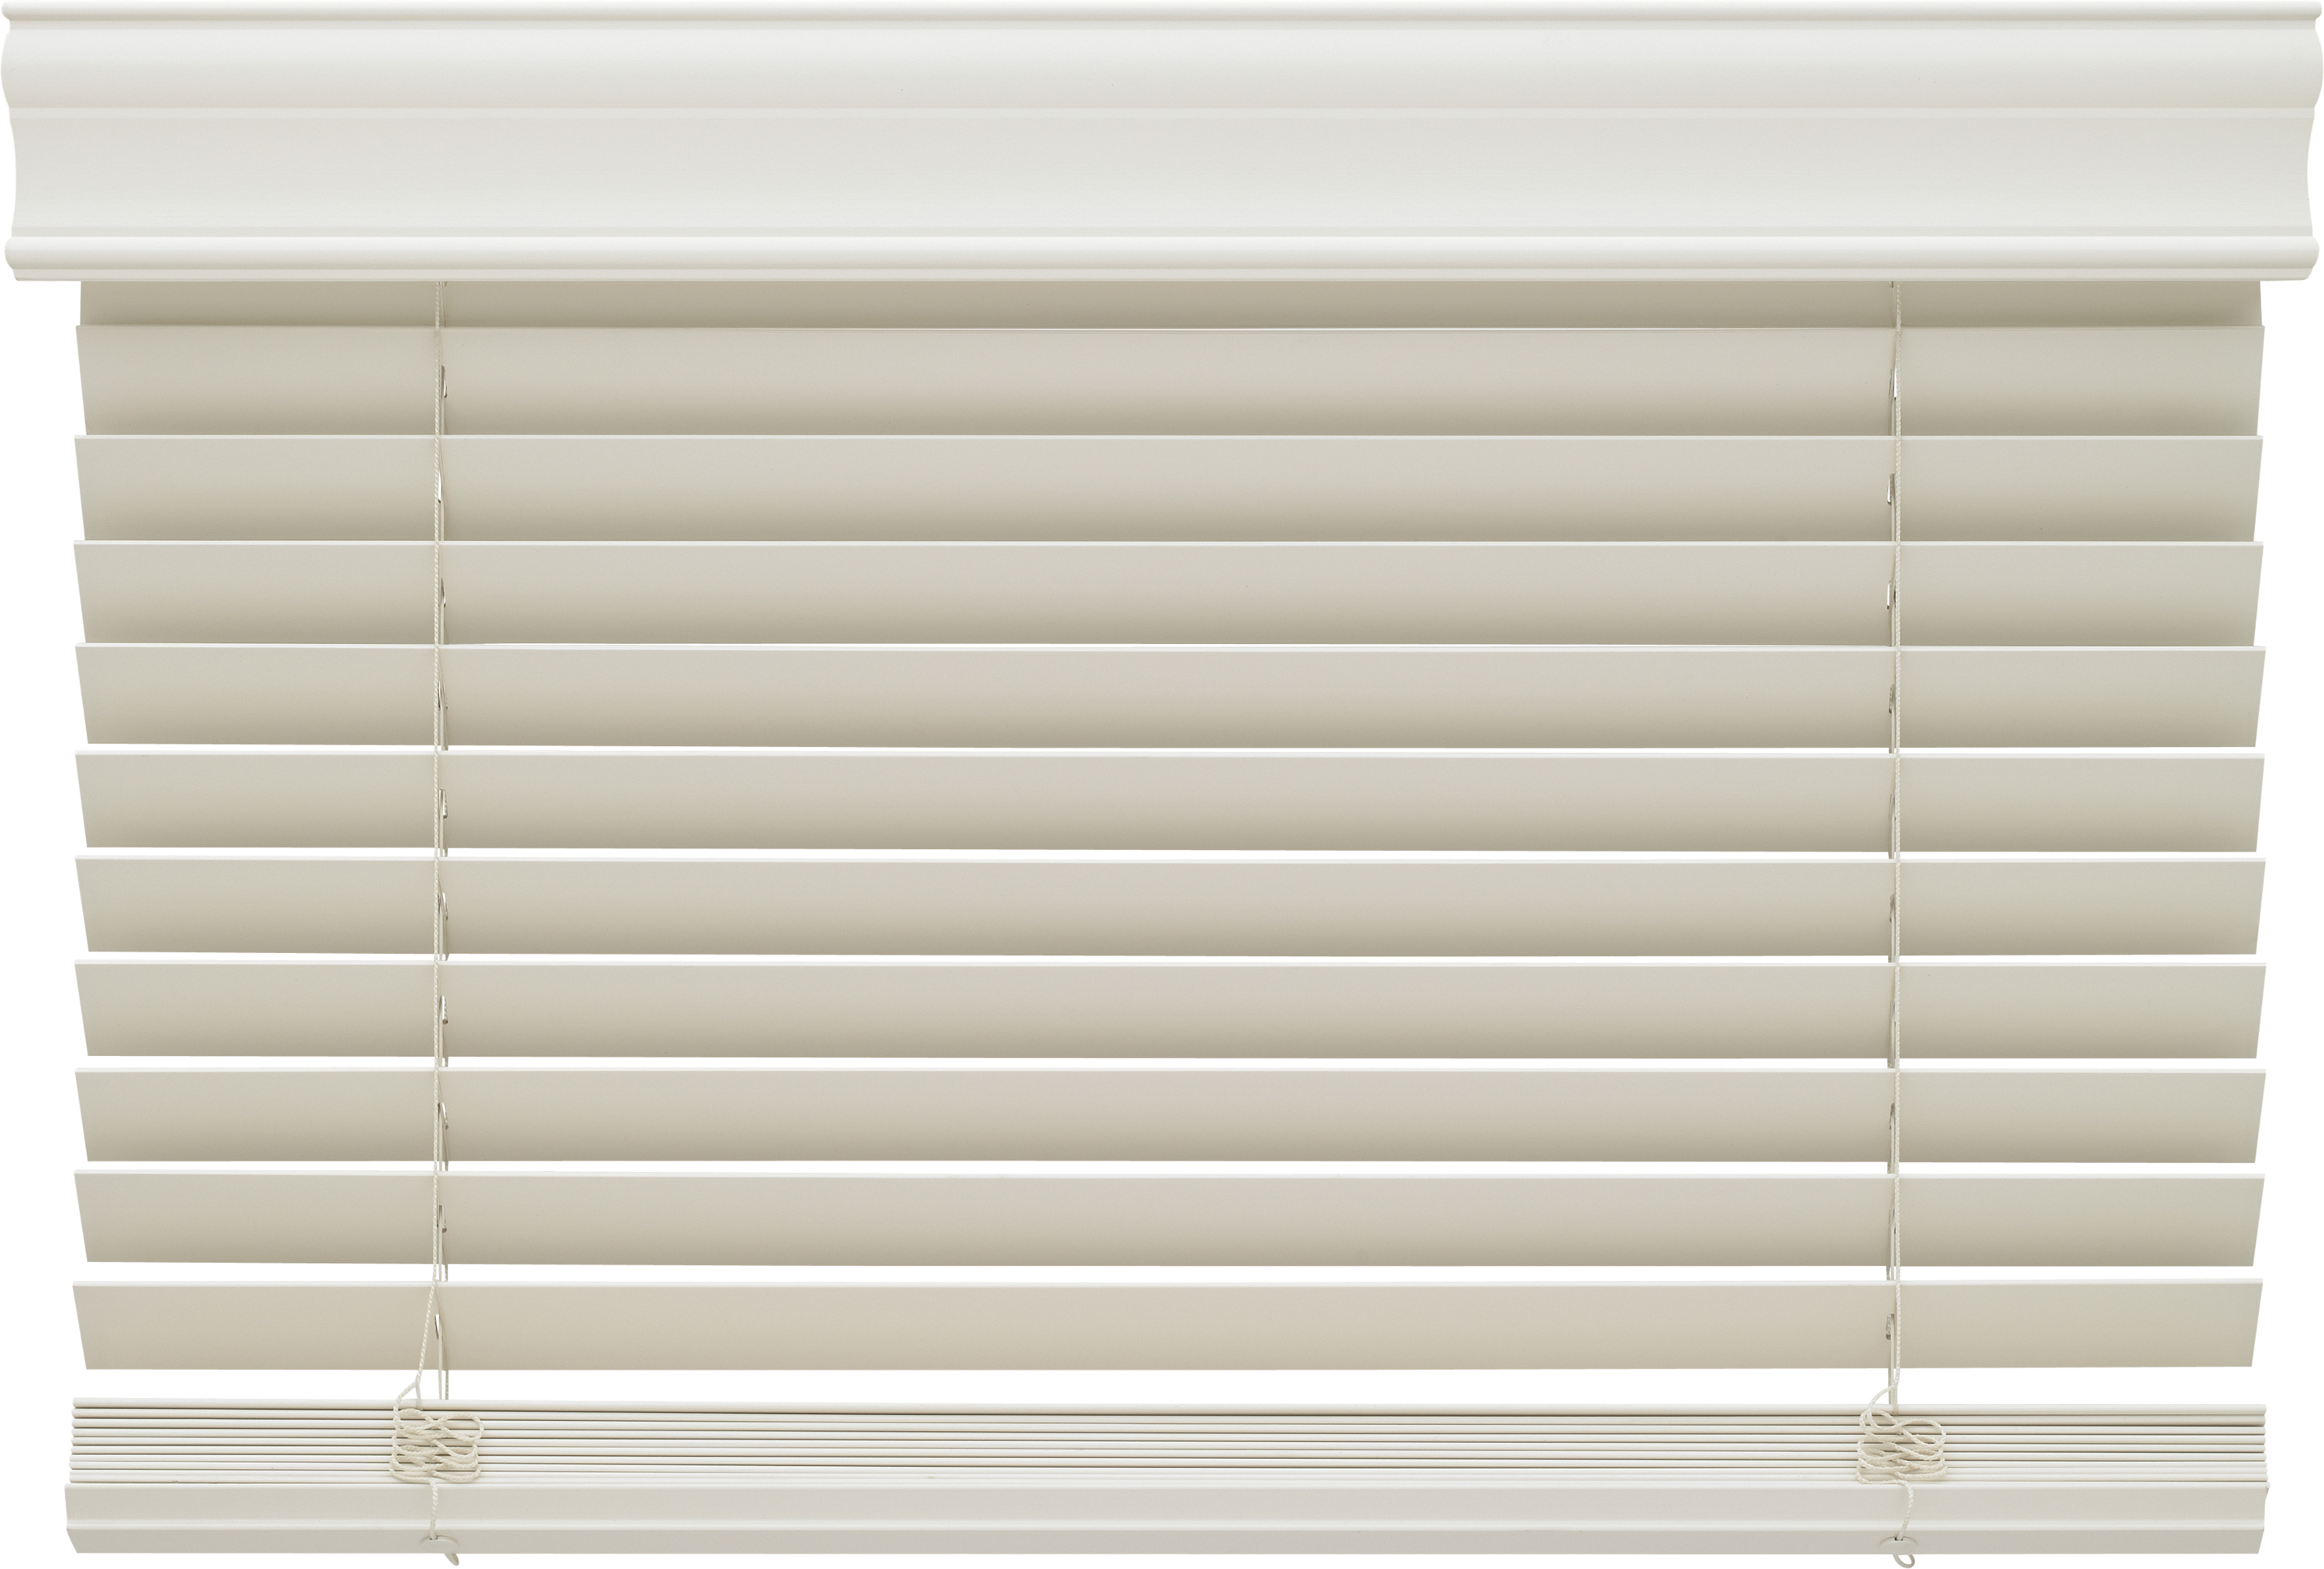 Blinds Png (100+ images in Collection) Page 1.